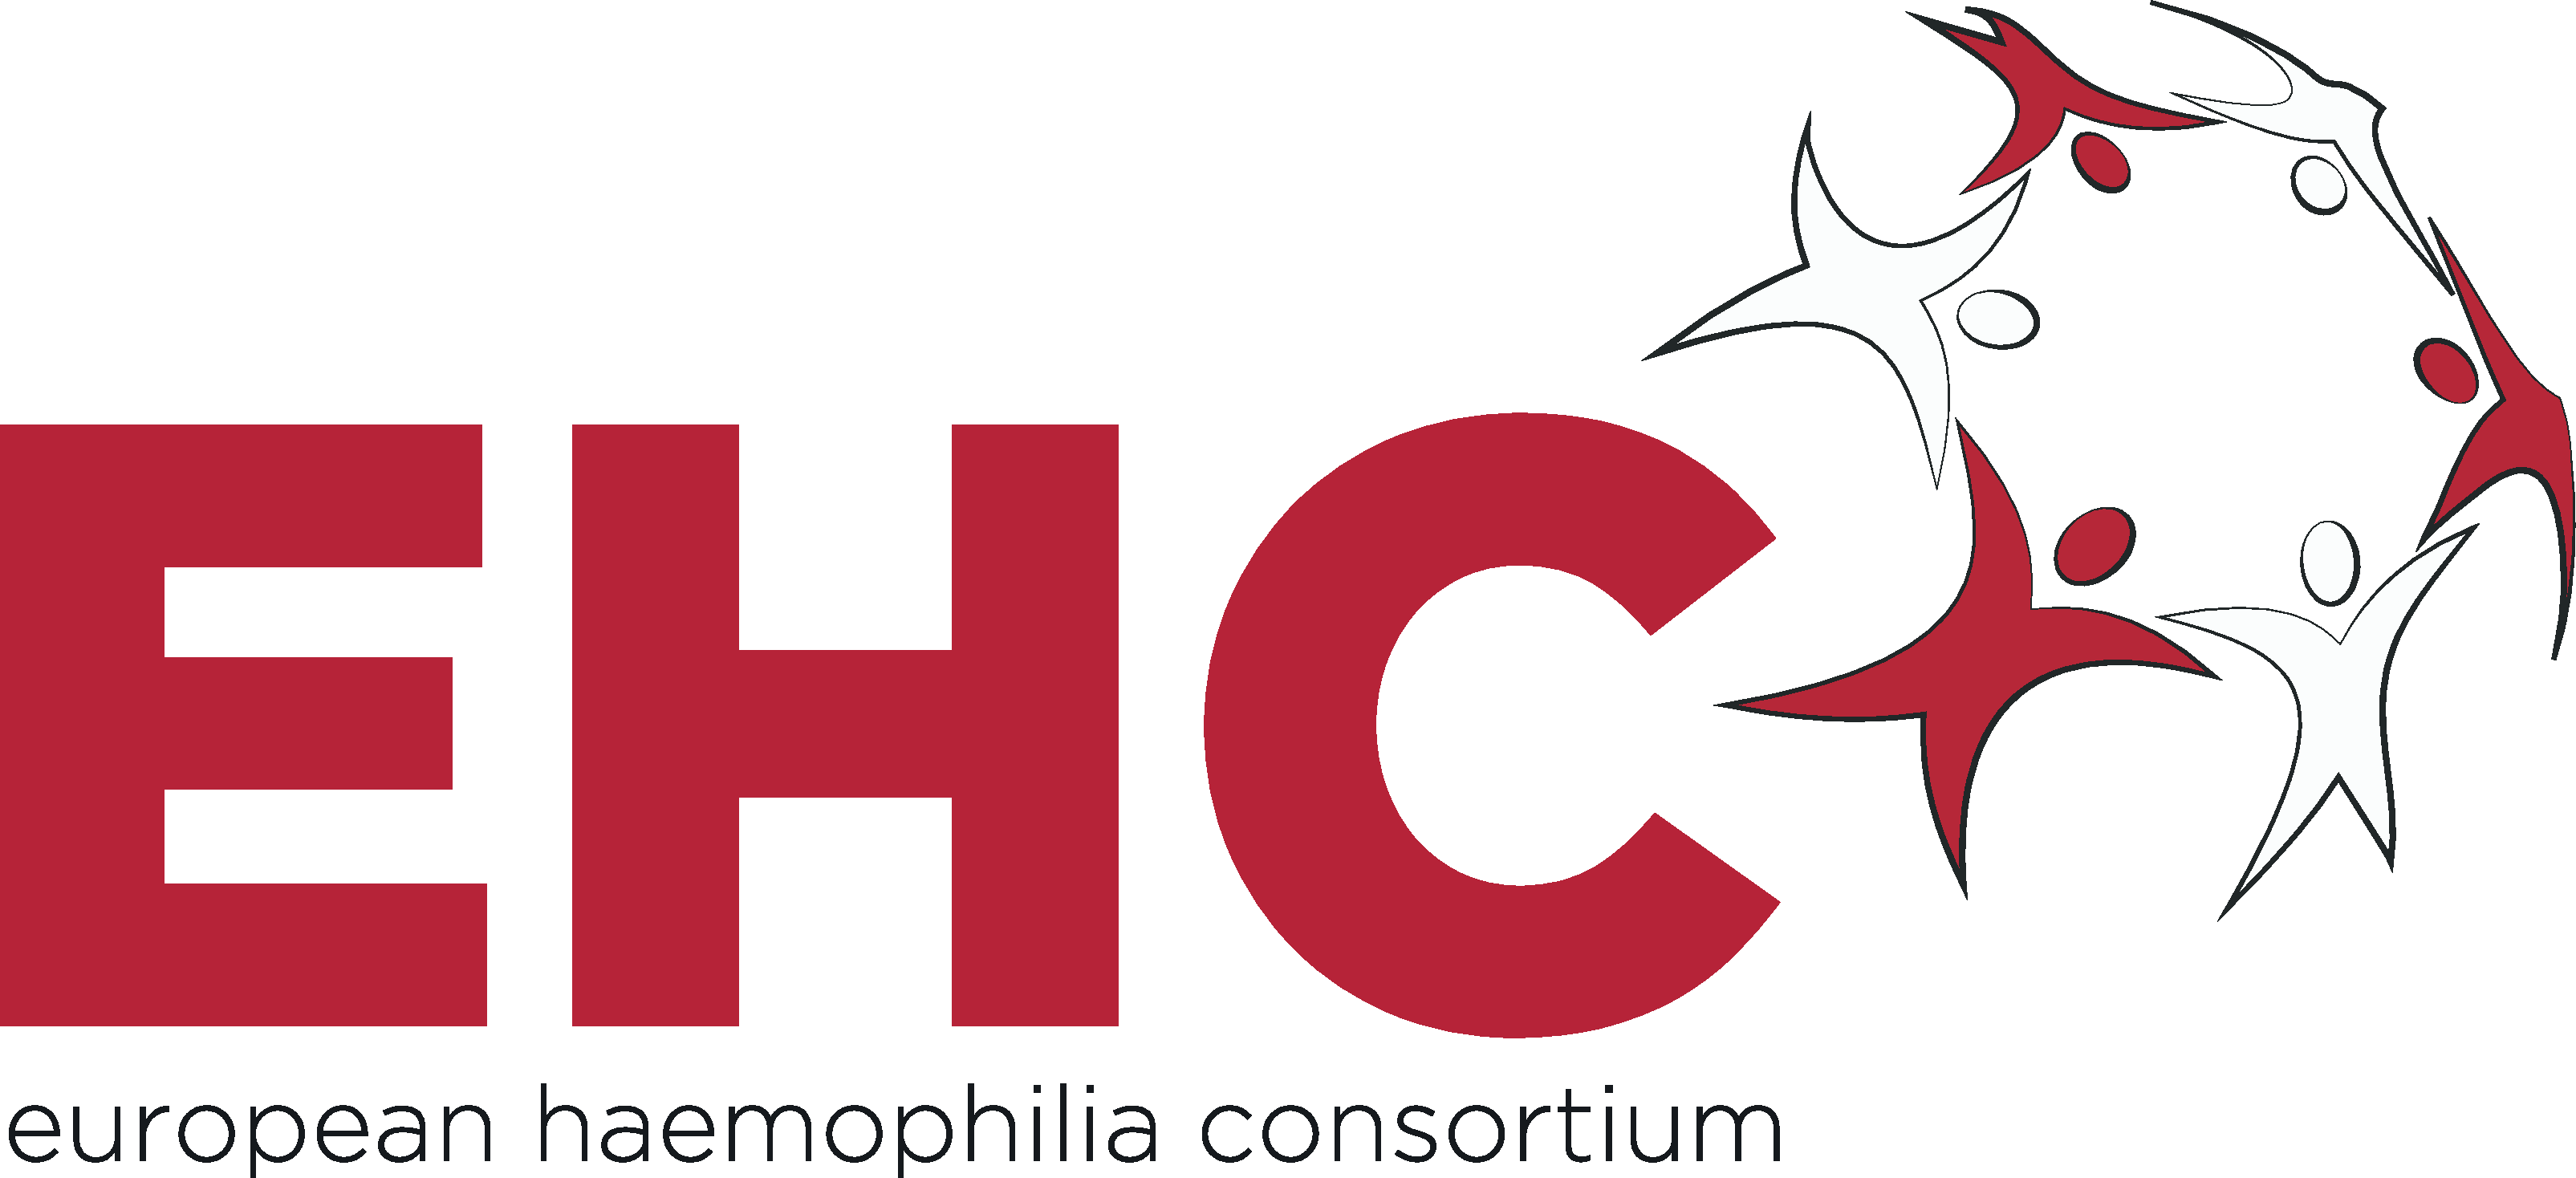 EHC – European Haemophilia Consortium -  - /ehc-launch-youth-fellowship-programme-join-now-to-make-a-difference-in-our-community/?pk_campaign=feed&pk_kwd=ehc-launch-youth-fellowship-programme-join-now-to-make-a-difference-in-our-community